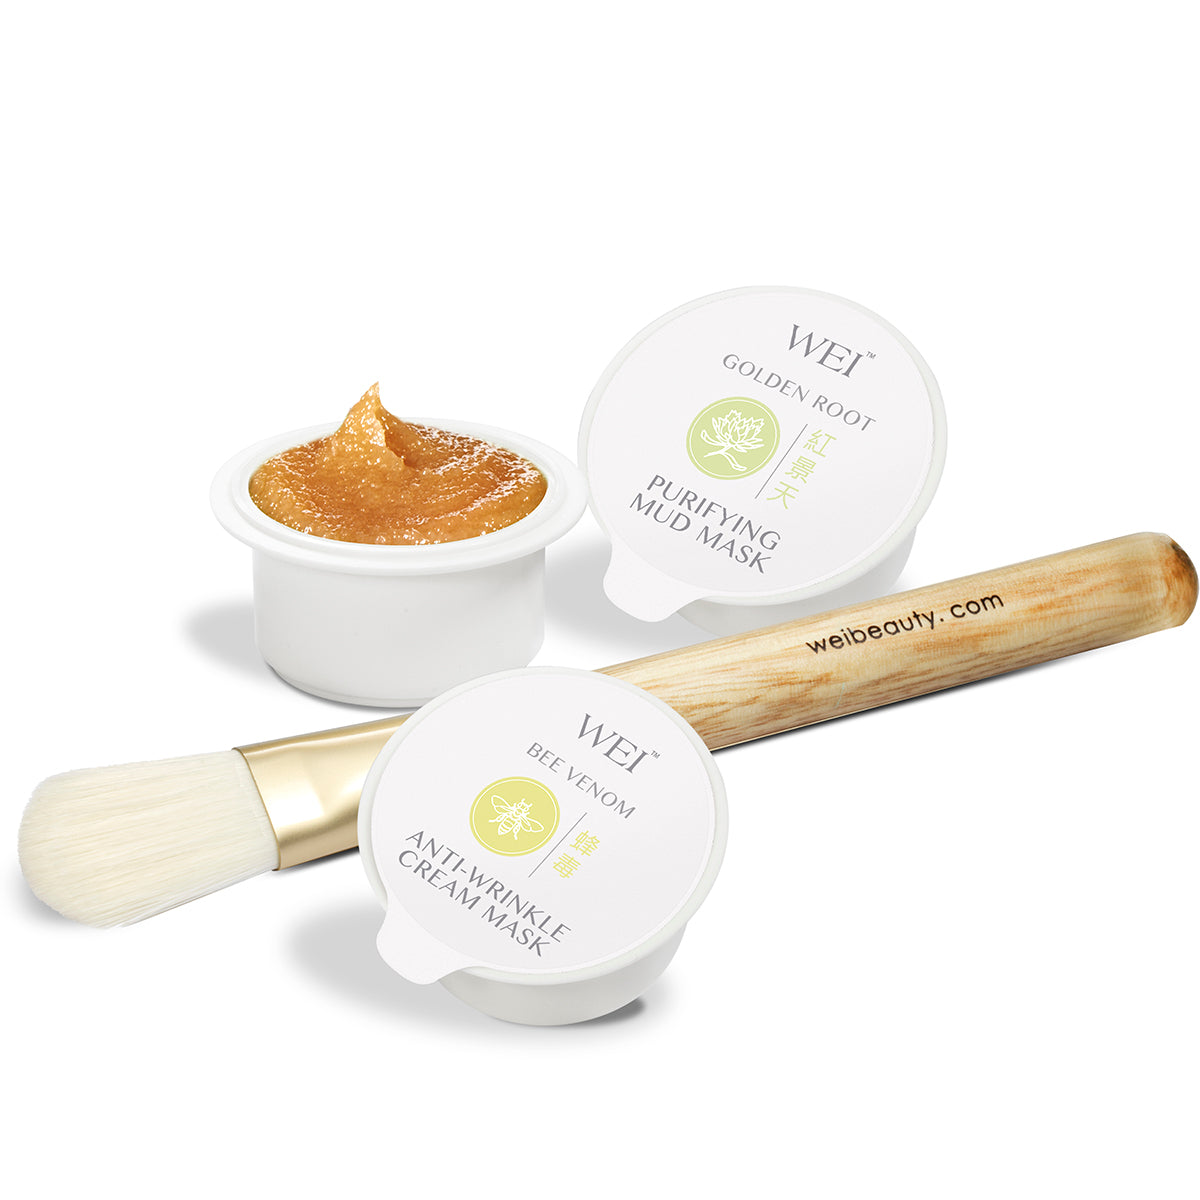 Bee Venom Anti-Wrinkle Cream mask, Brown Sugar Ready Exfoliating Mask, Golden Root Purifying Mud Mask with brush applicator